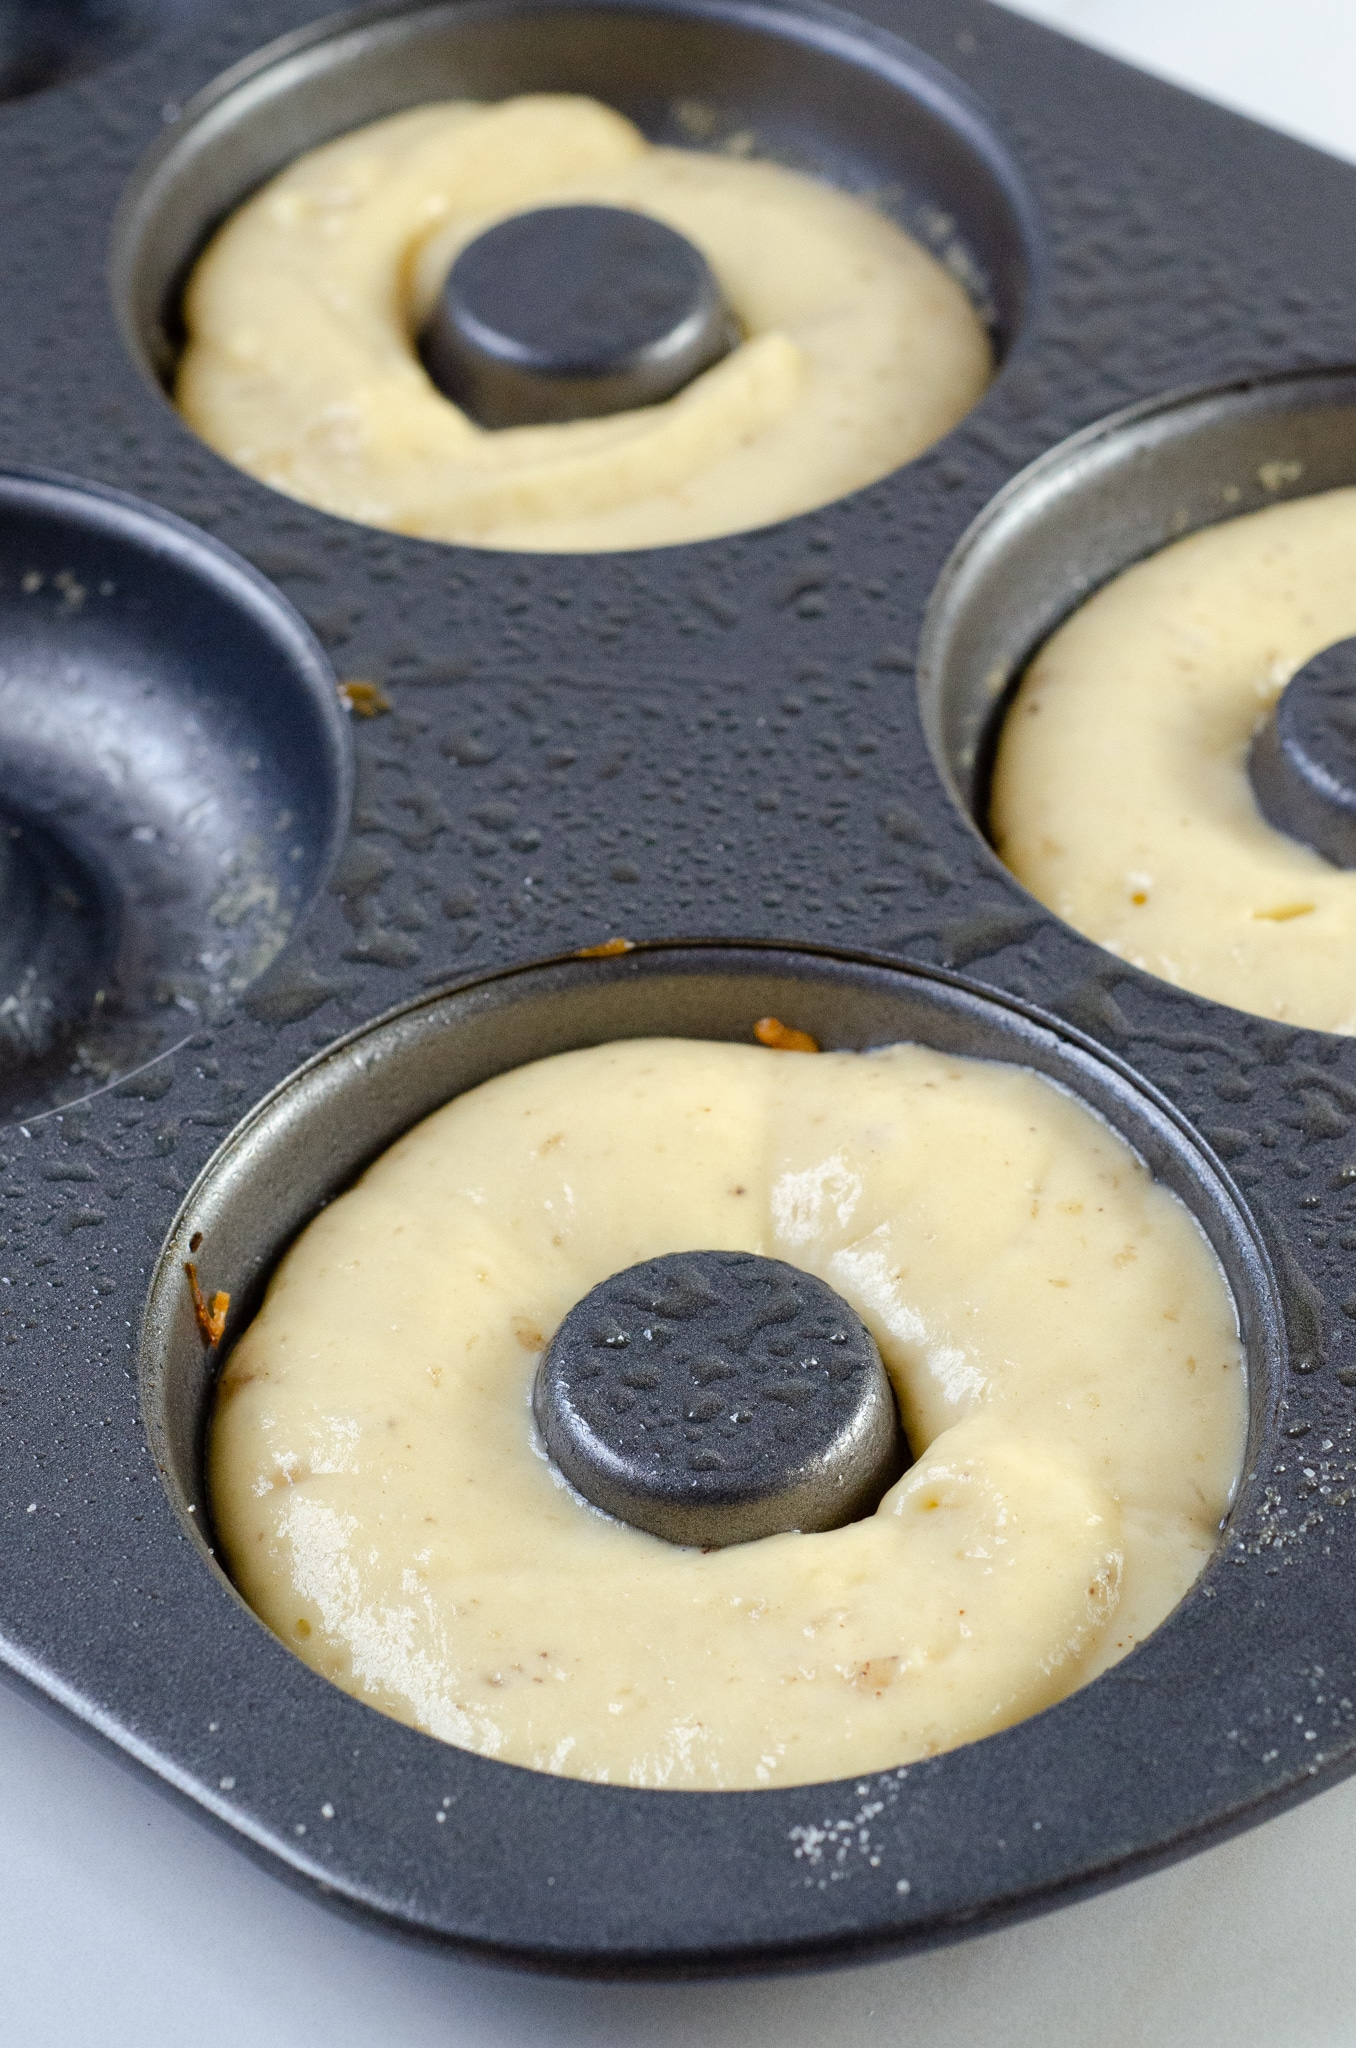 Baked Vanilla Donuts Baking Tray. Baked Vanilla Donuts are perfect for any occasion, Valentine's Day treats or birthday sweets, the possibilities are endless.